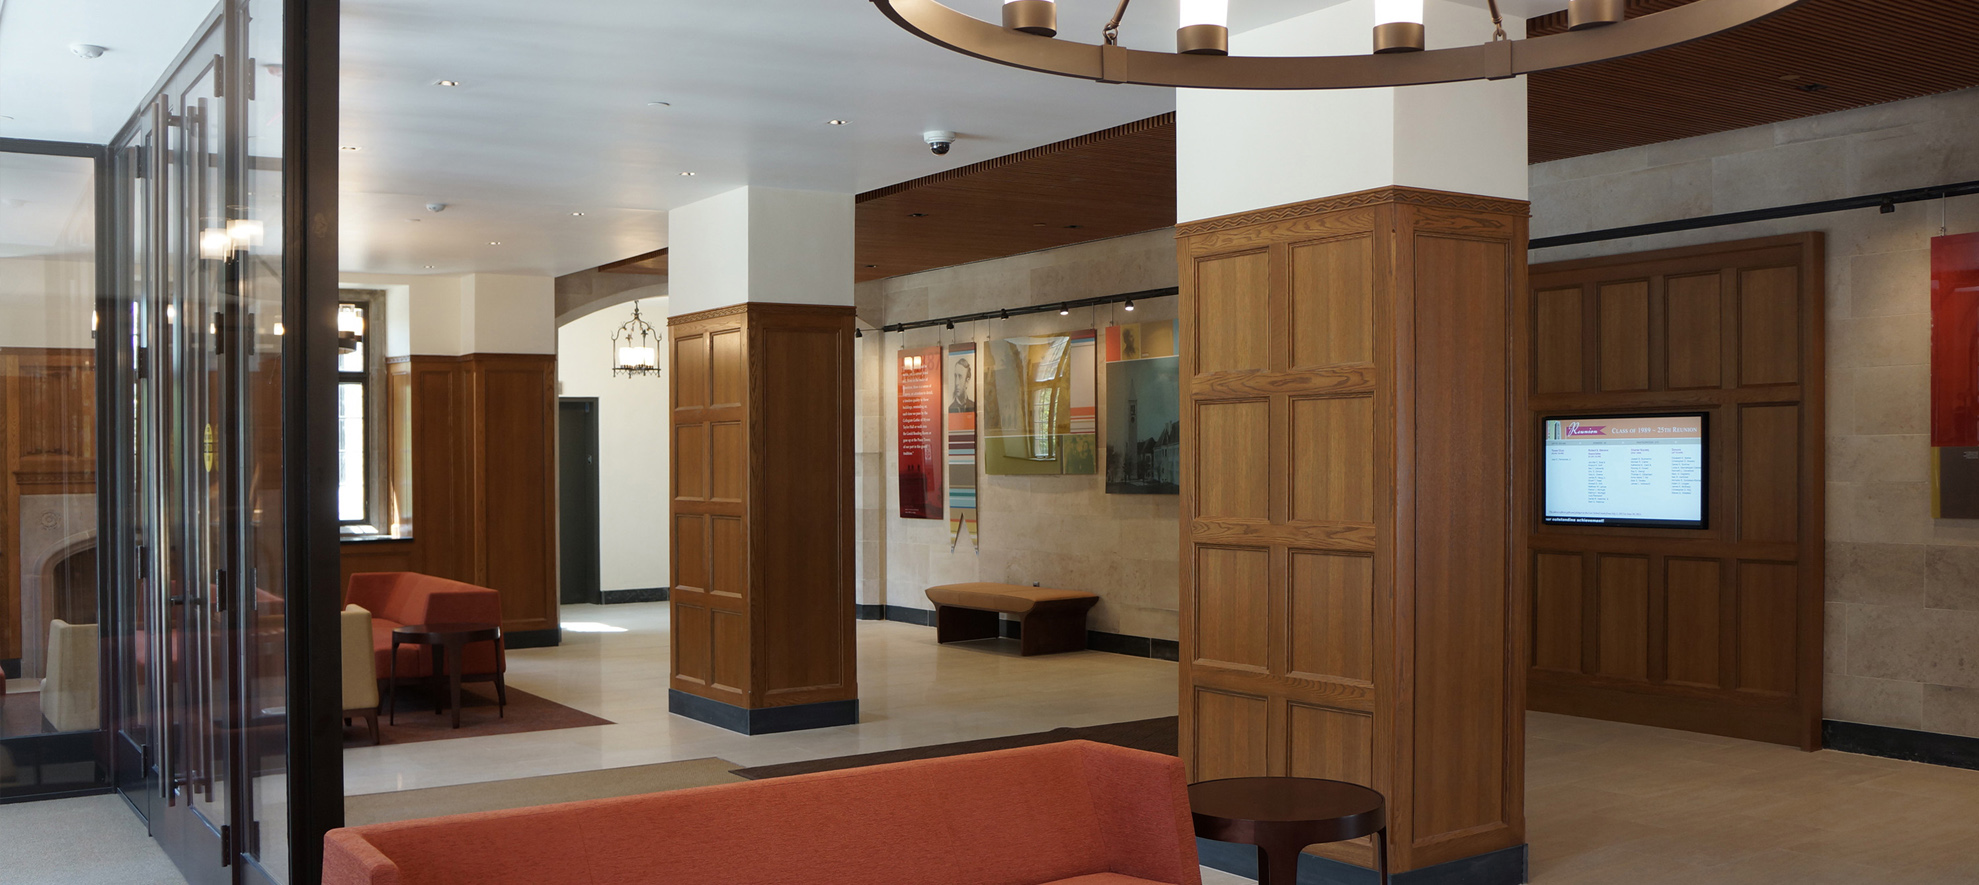 Cornell Law School – Classrooms & Library Renovation & Addition